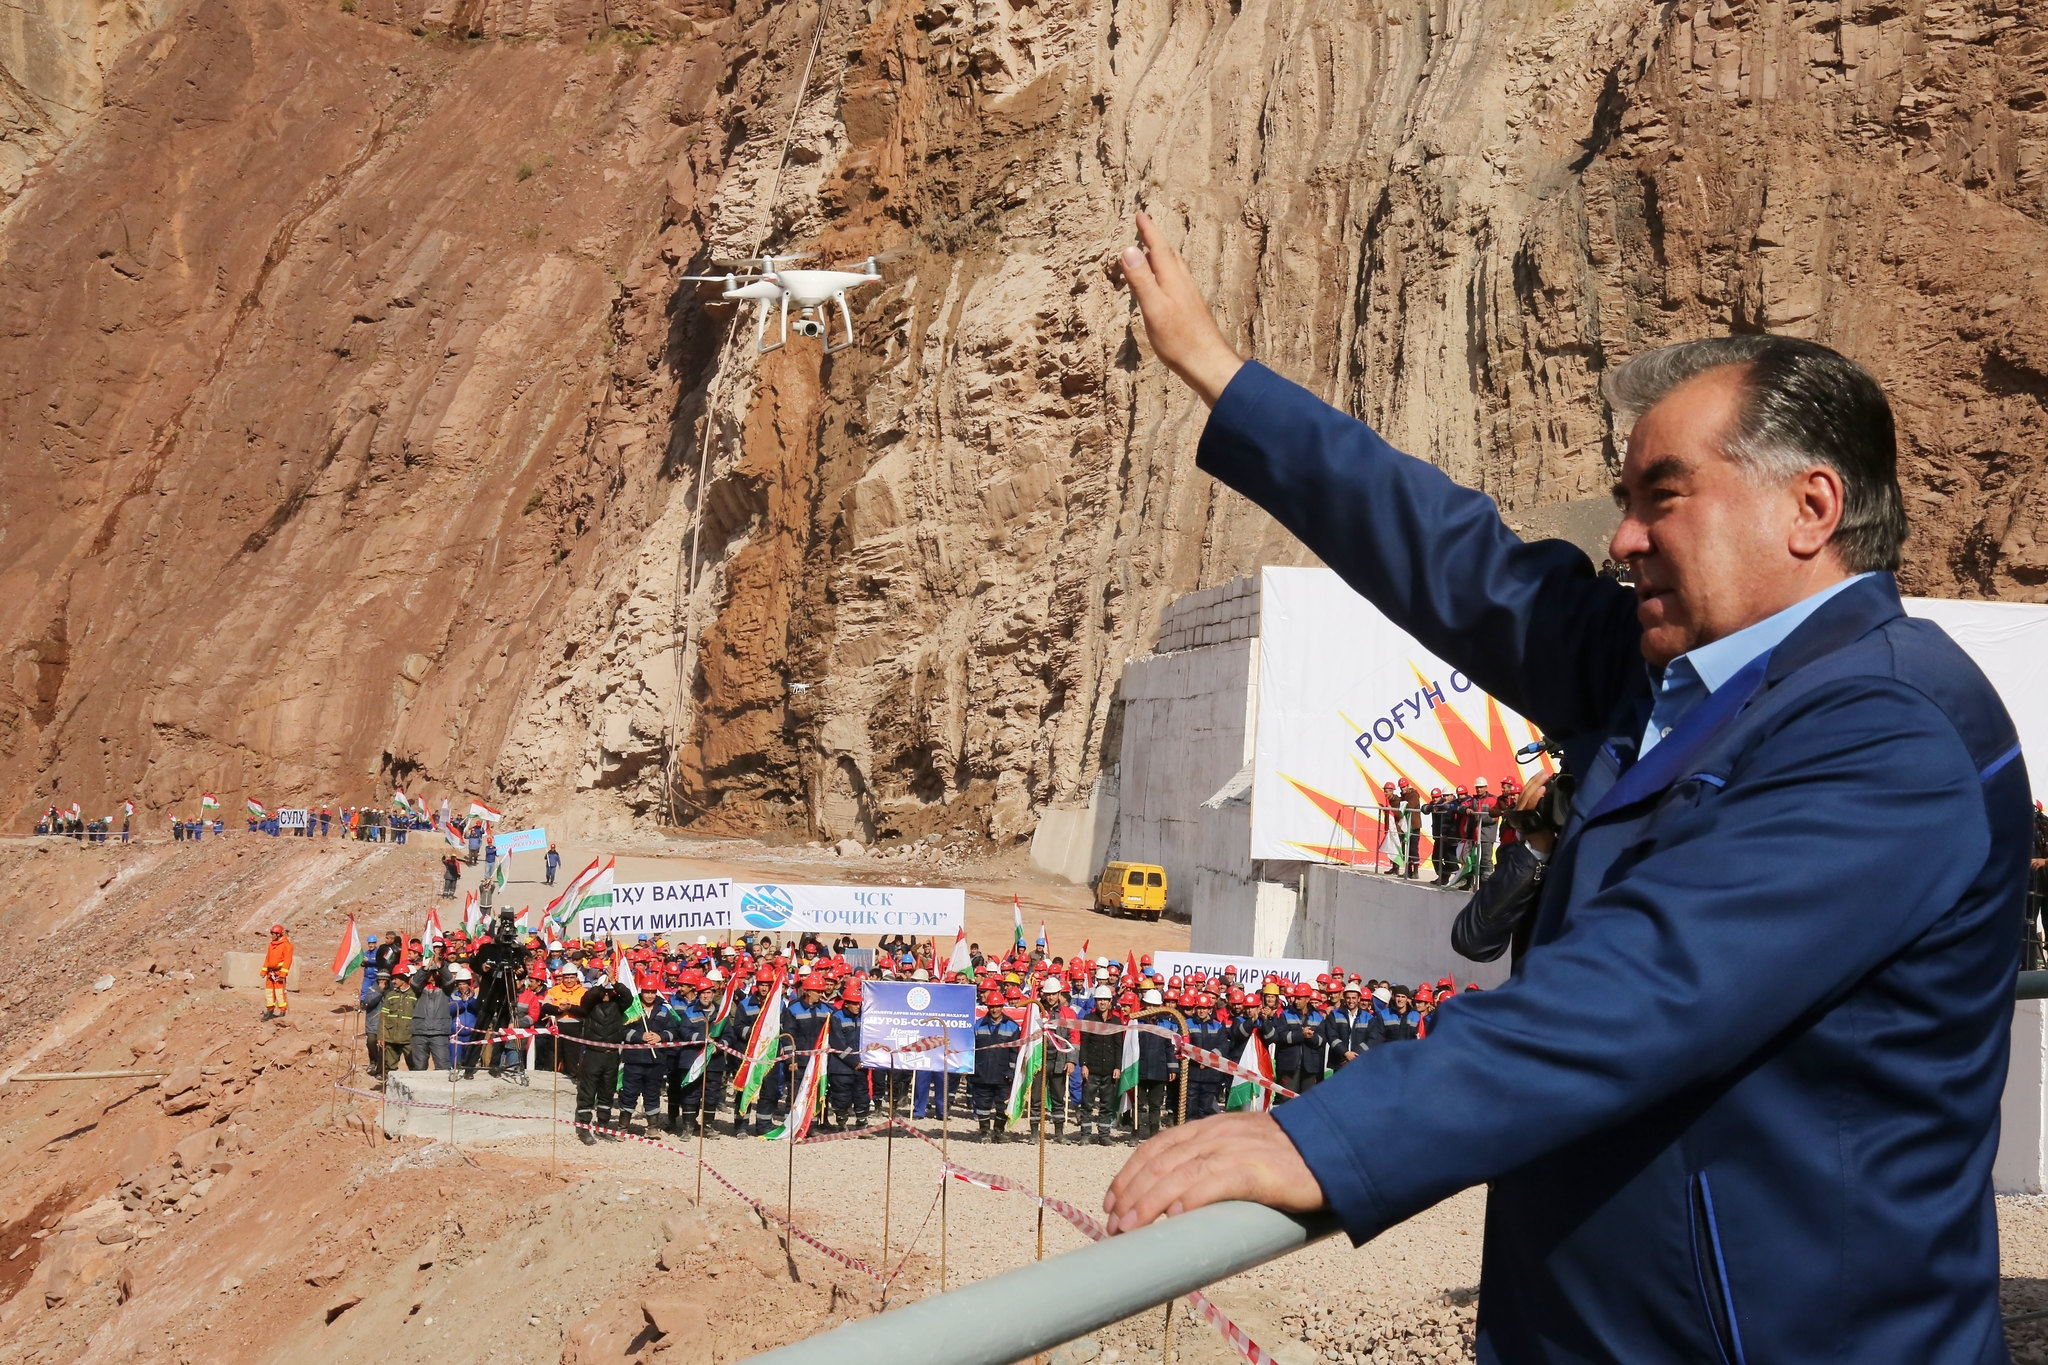 A dam good price: President Emomali Rahmon visiting the Roghun construction site in October 2016. (Photo: Presidential administration)